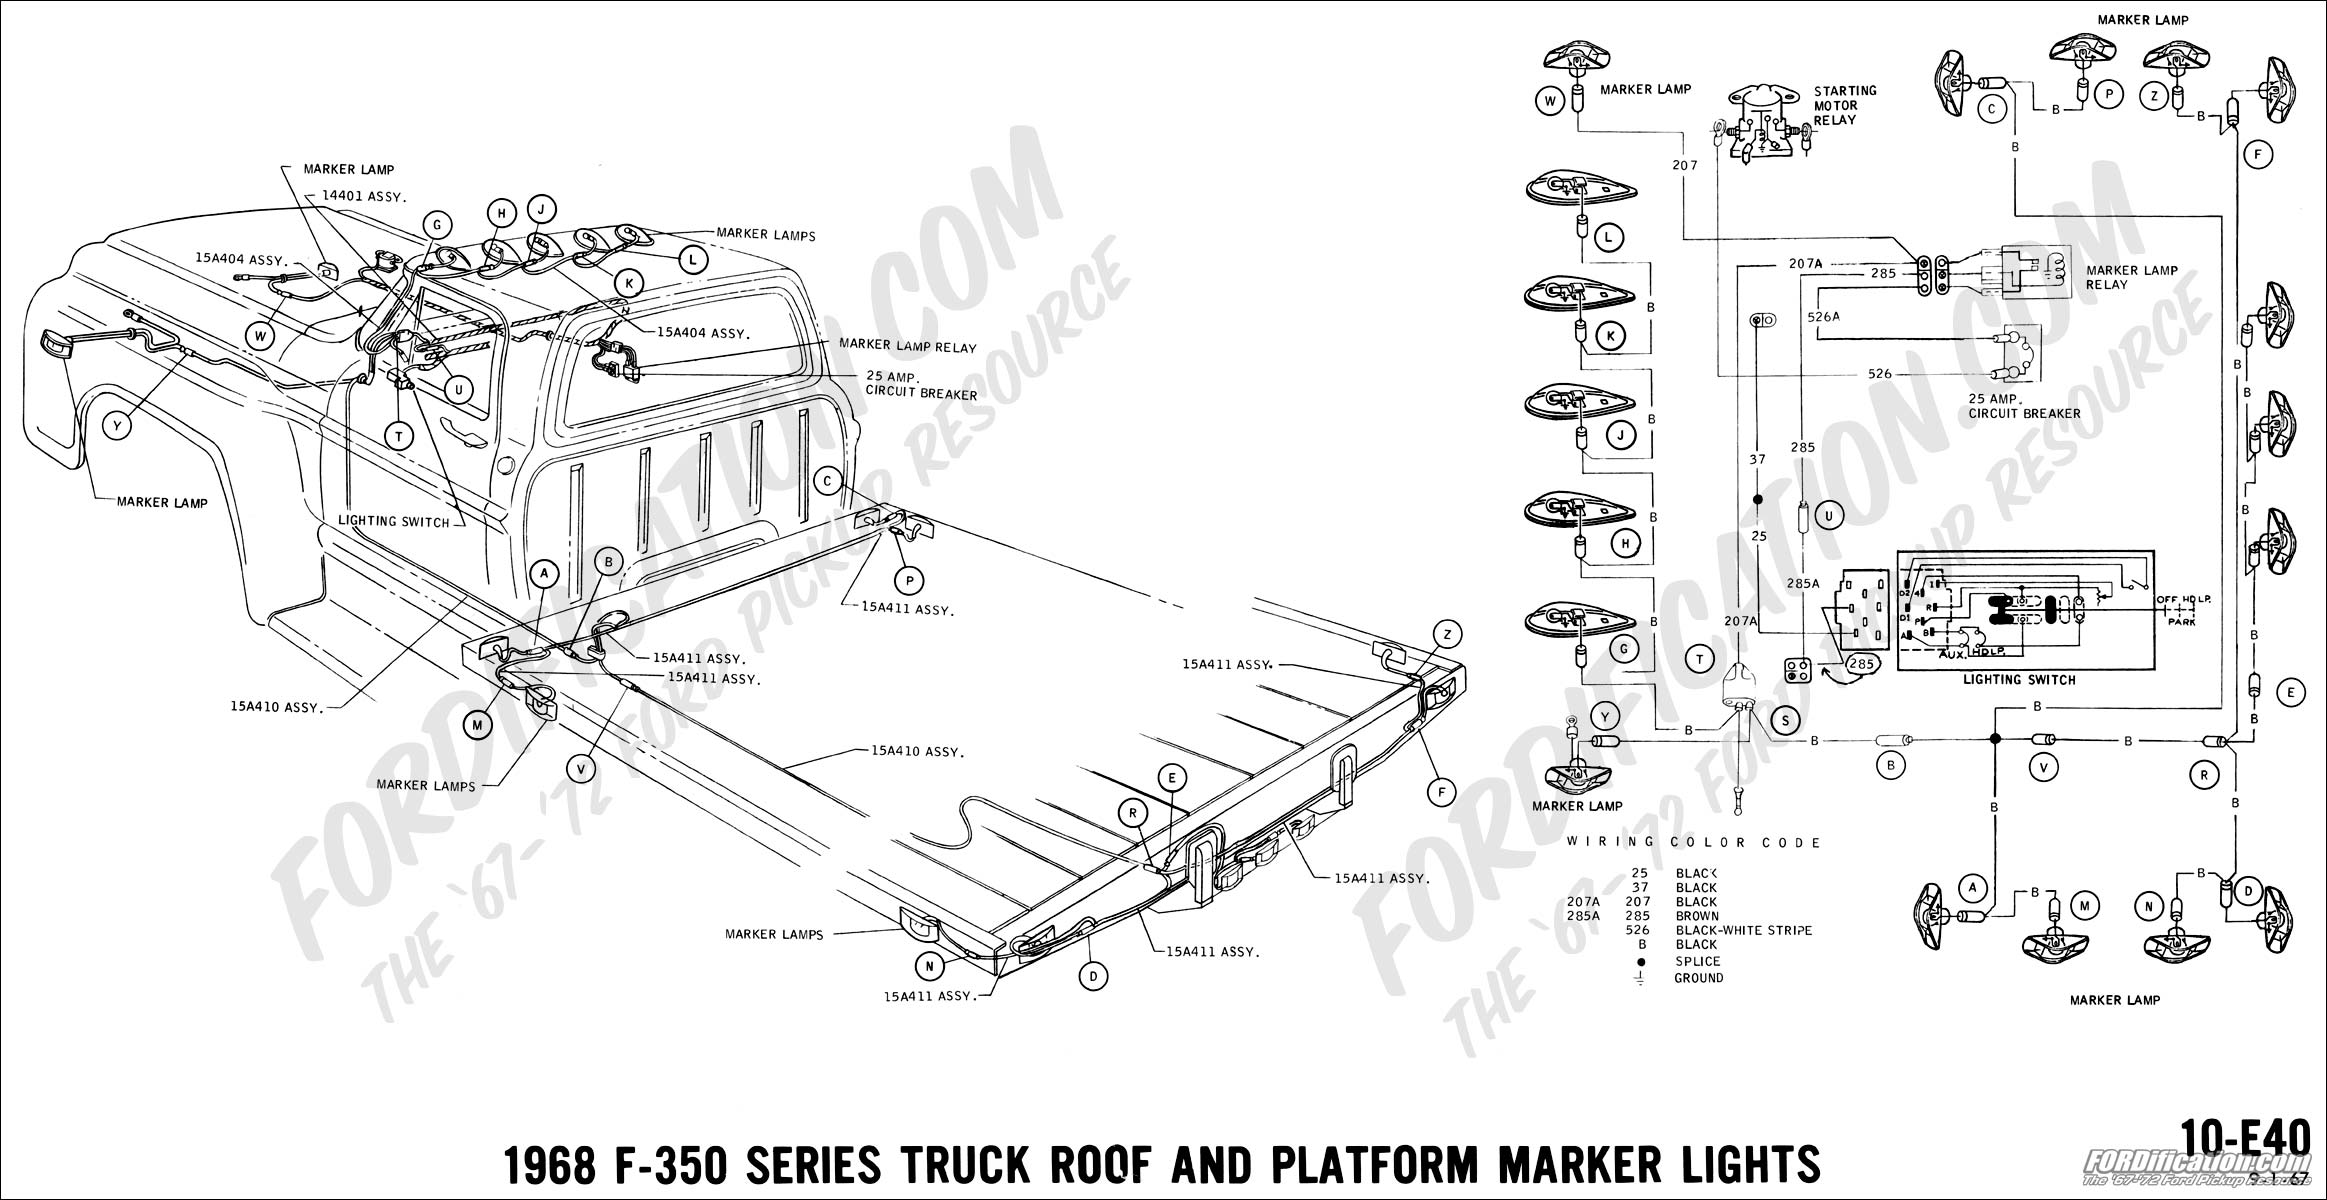 Gmc 3500 Wiring Diagram 1968 Great Design Of 2005 Chevy C7500 Truck Diagrams U2022 For Free Pickup Trailer Sierra